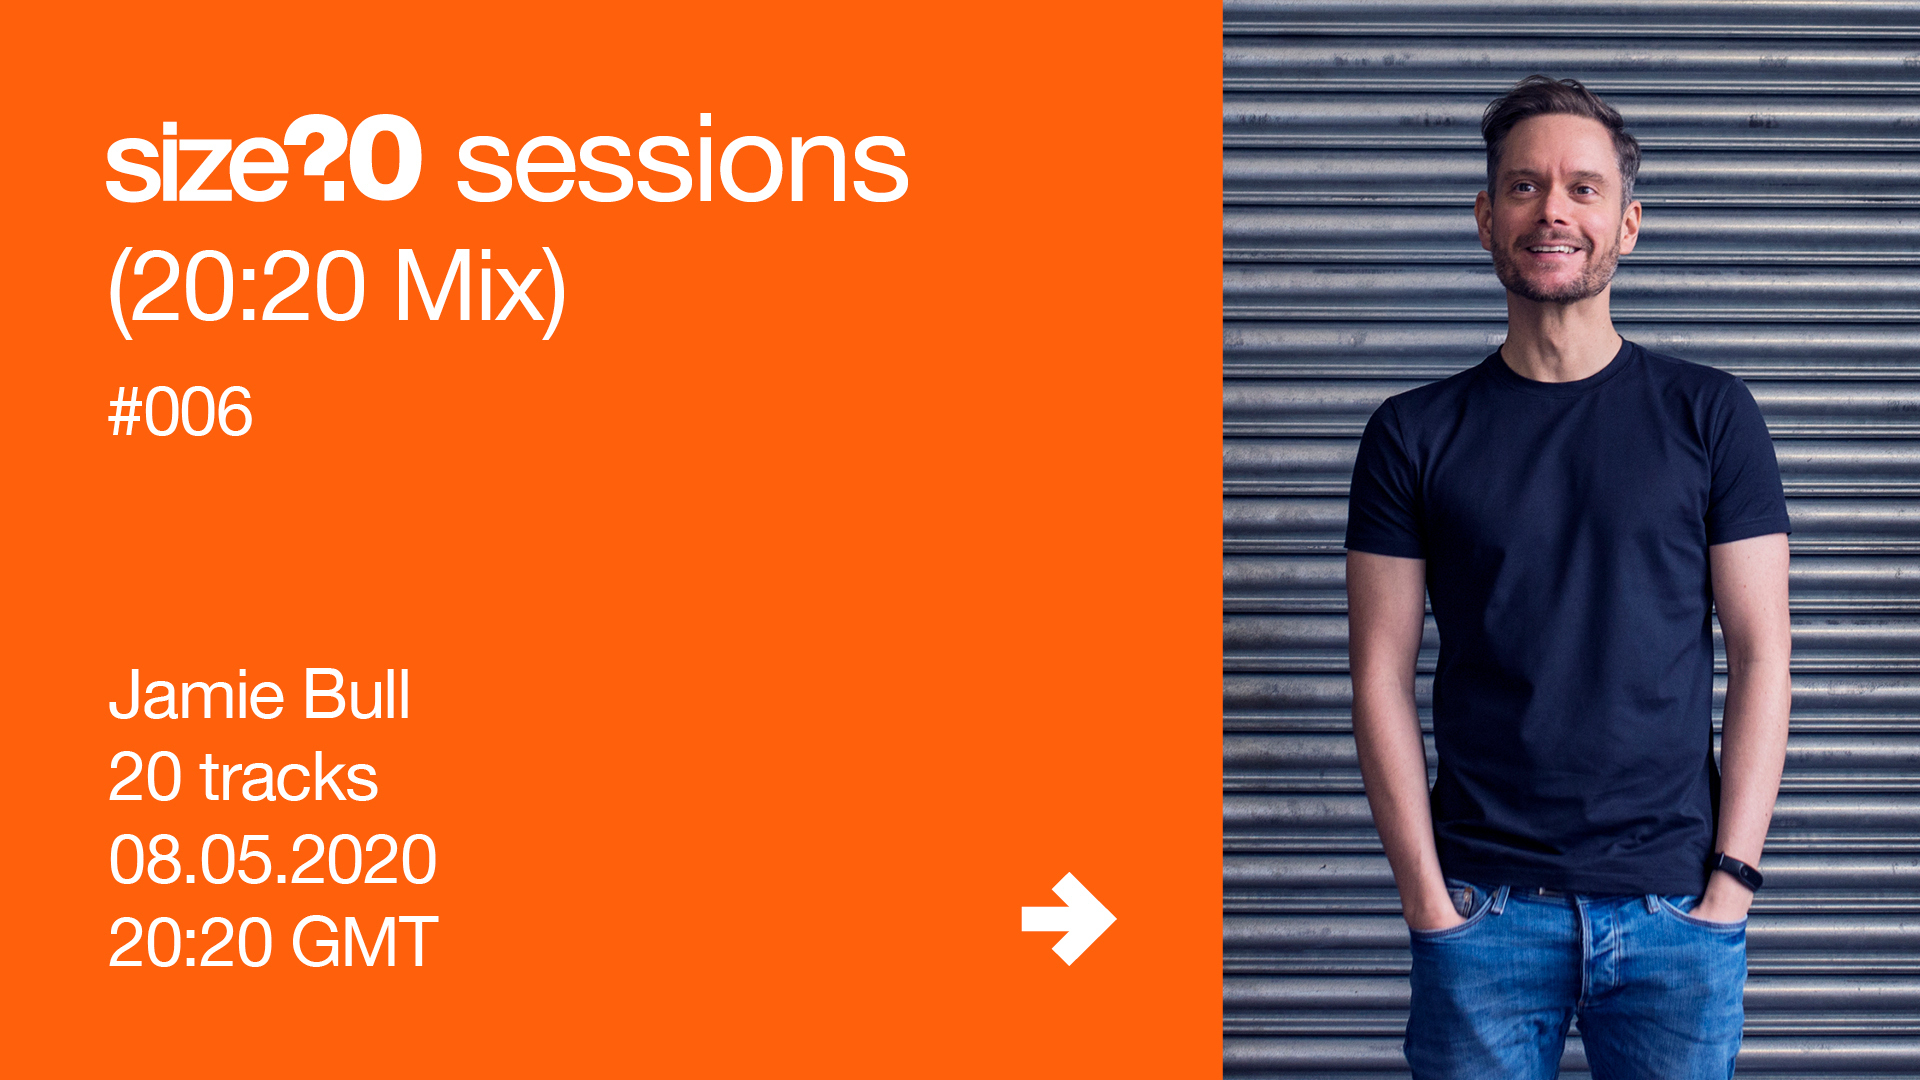 size? sessions (20:20 Mix) #006 - Jamie Bull